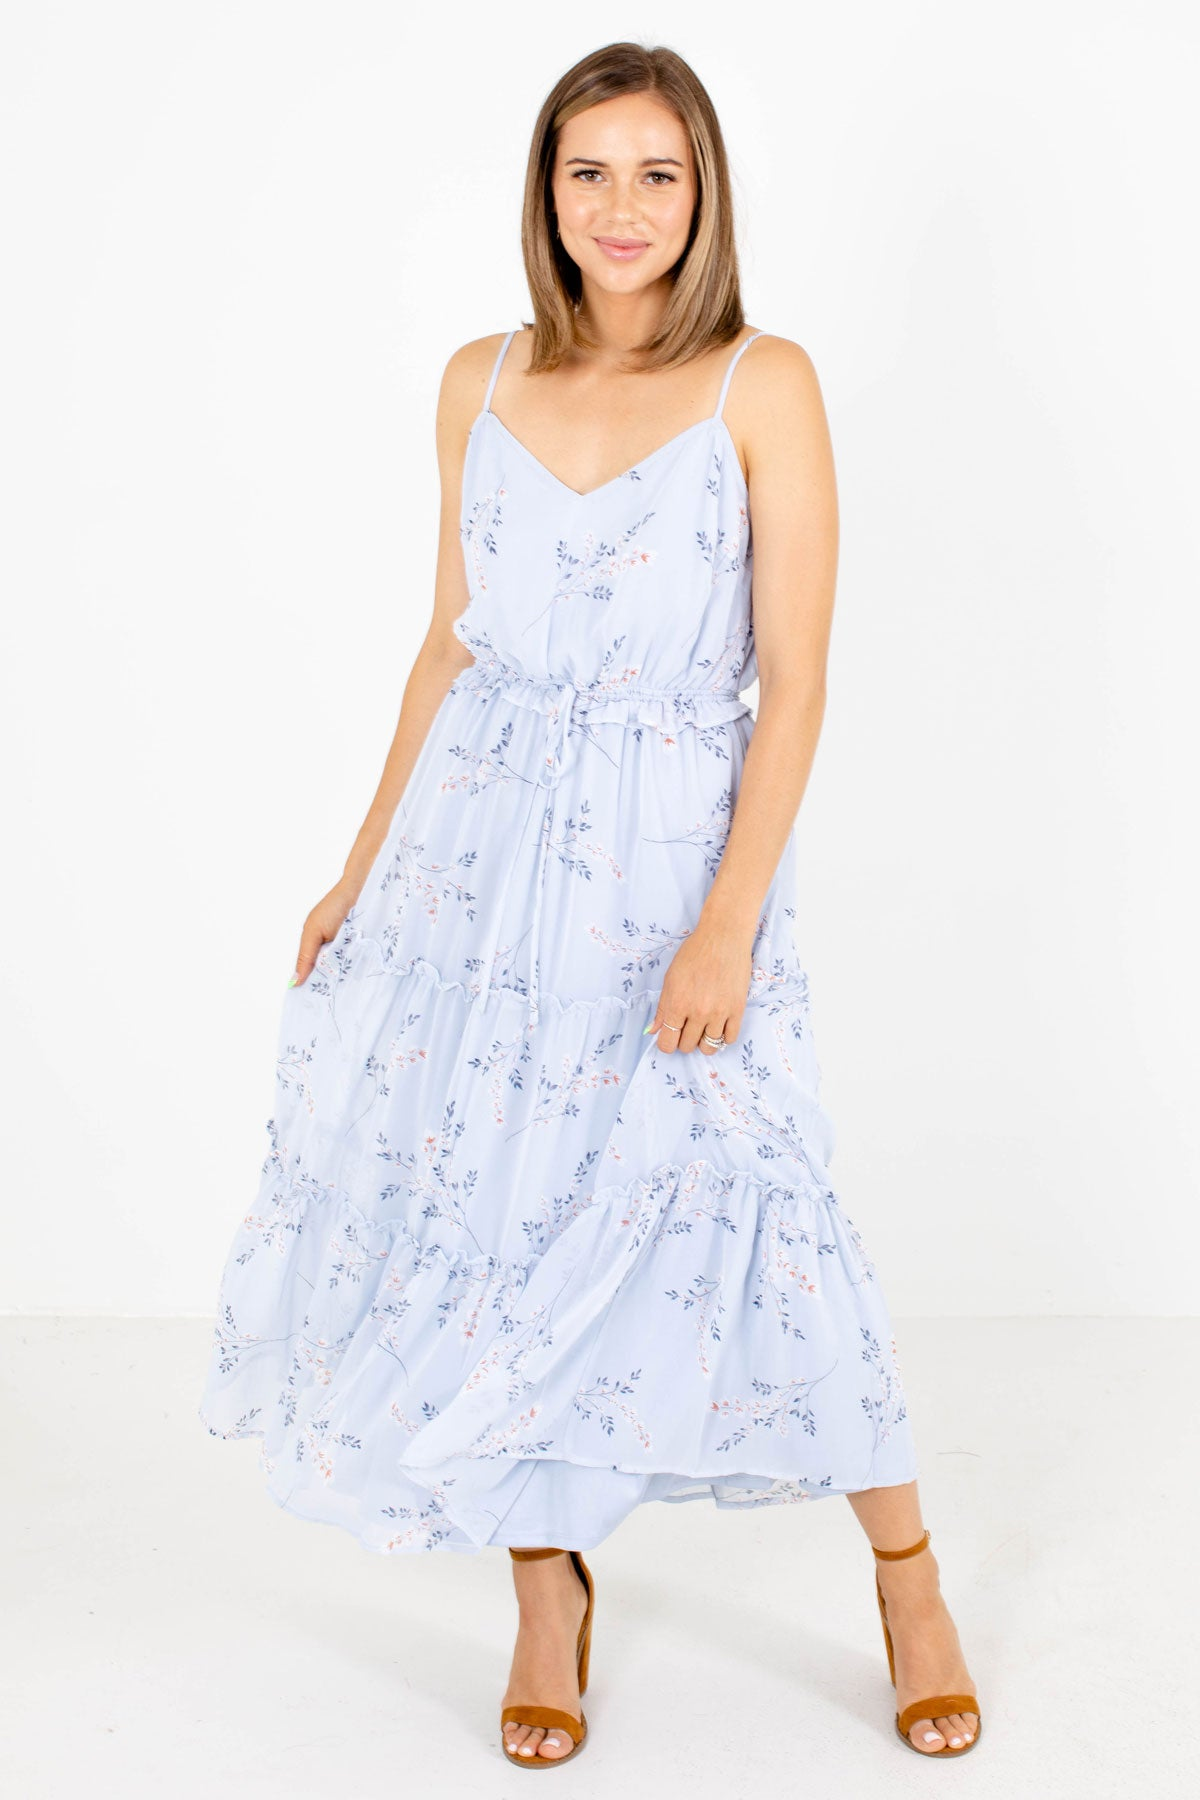 Blue Floral Patterned Boutique Dresses for Women